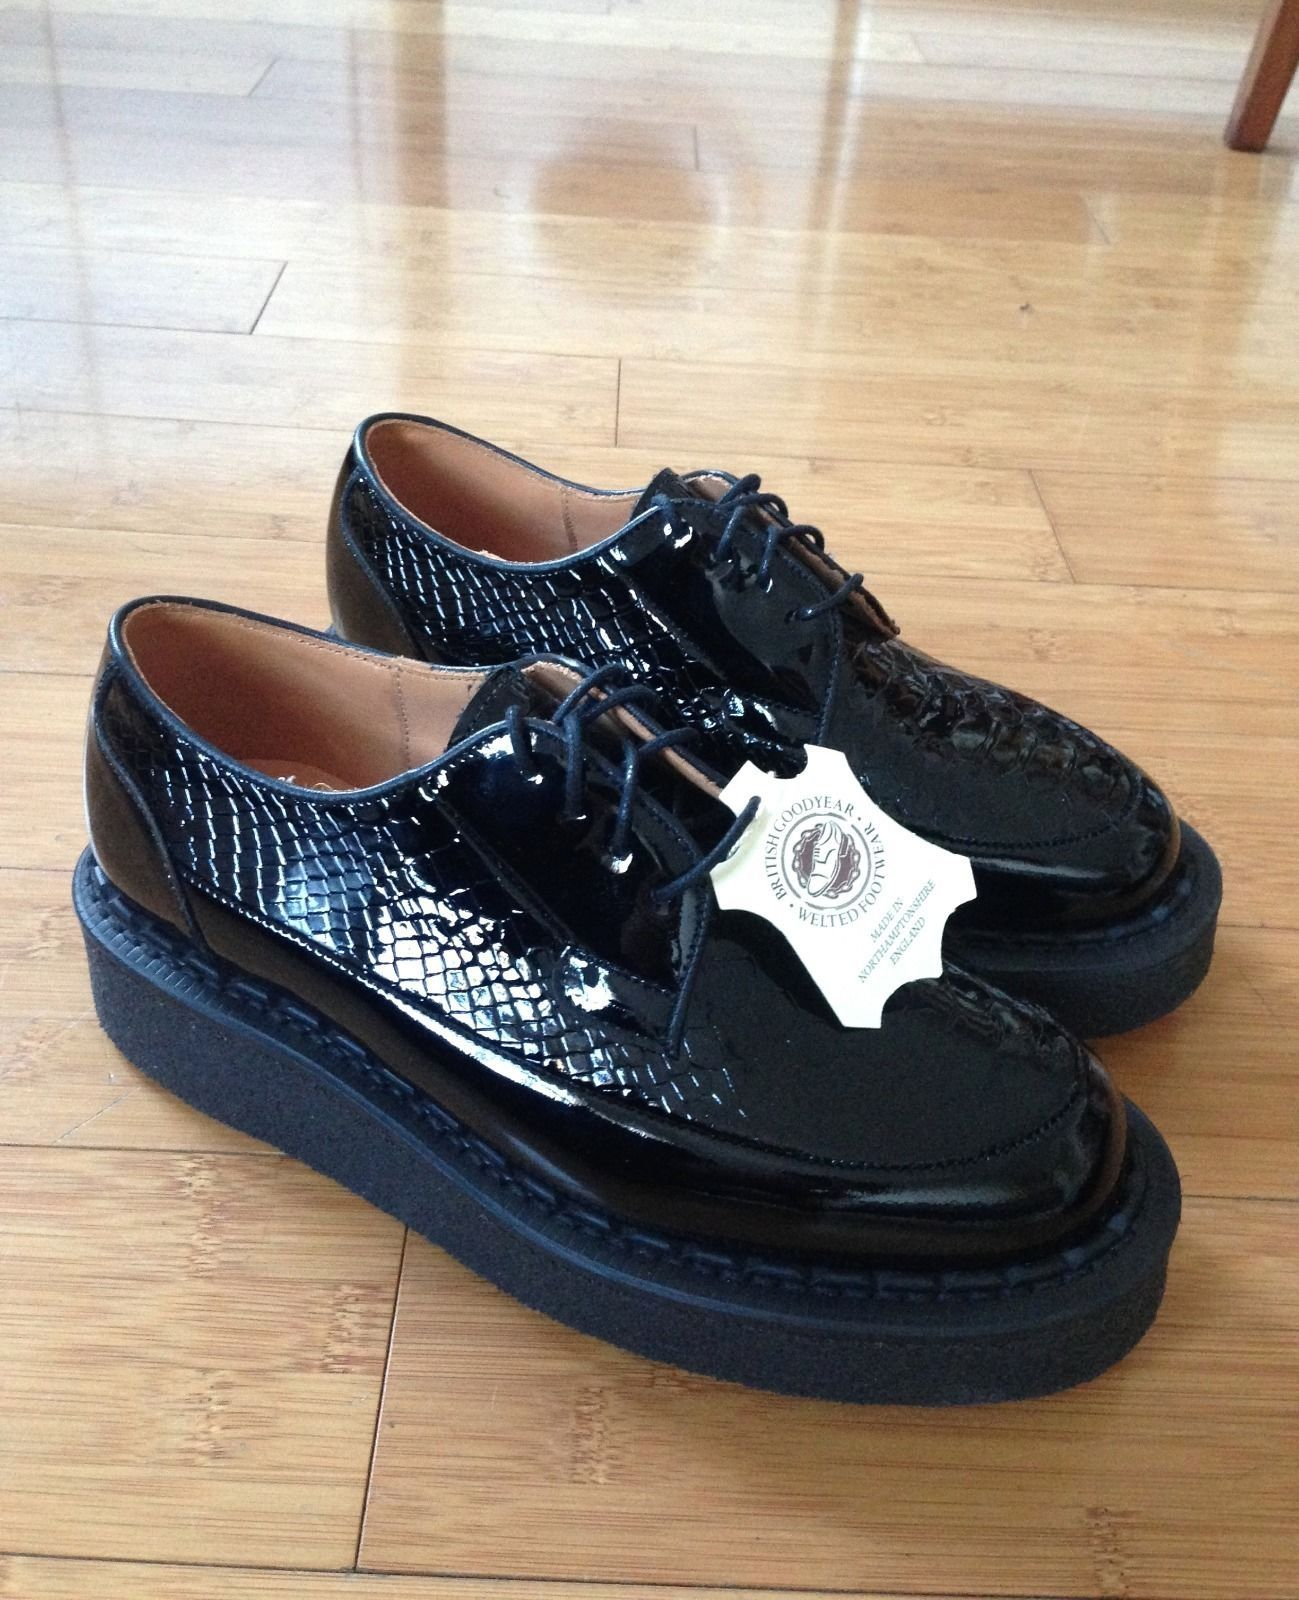 creepers george cox occasion